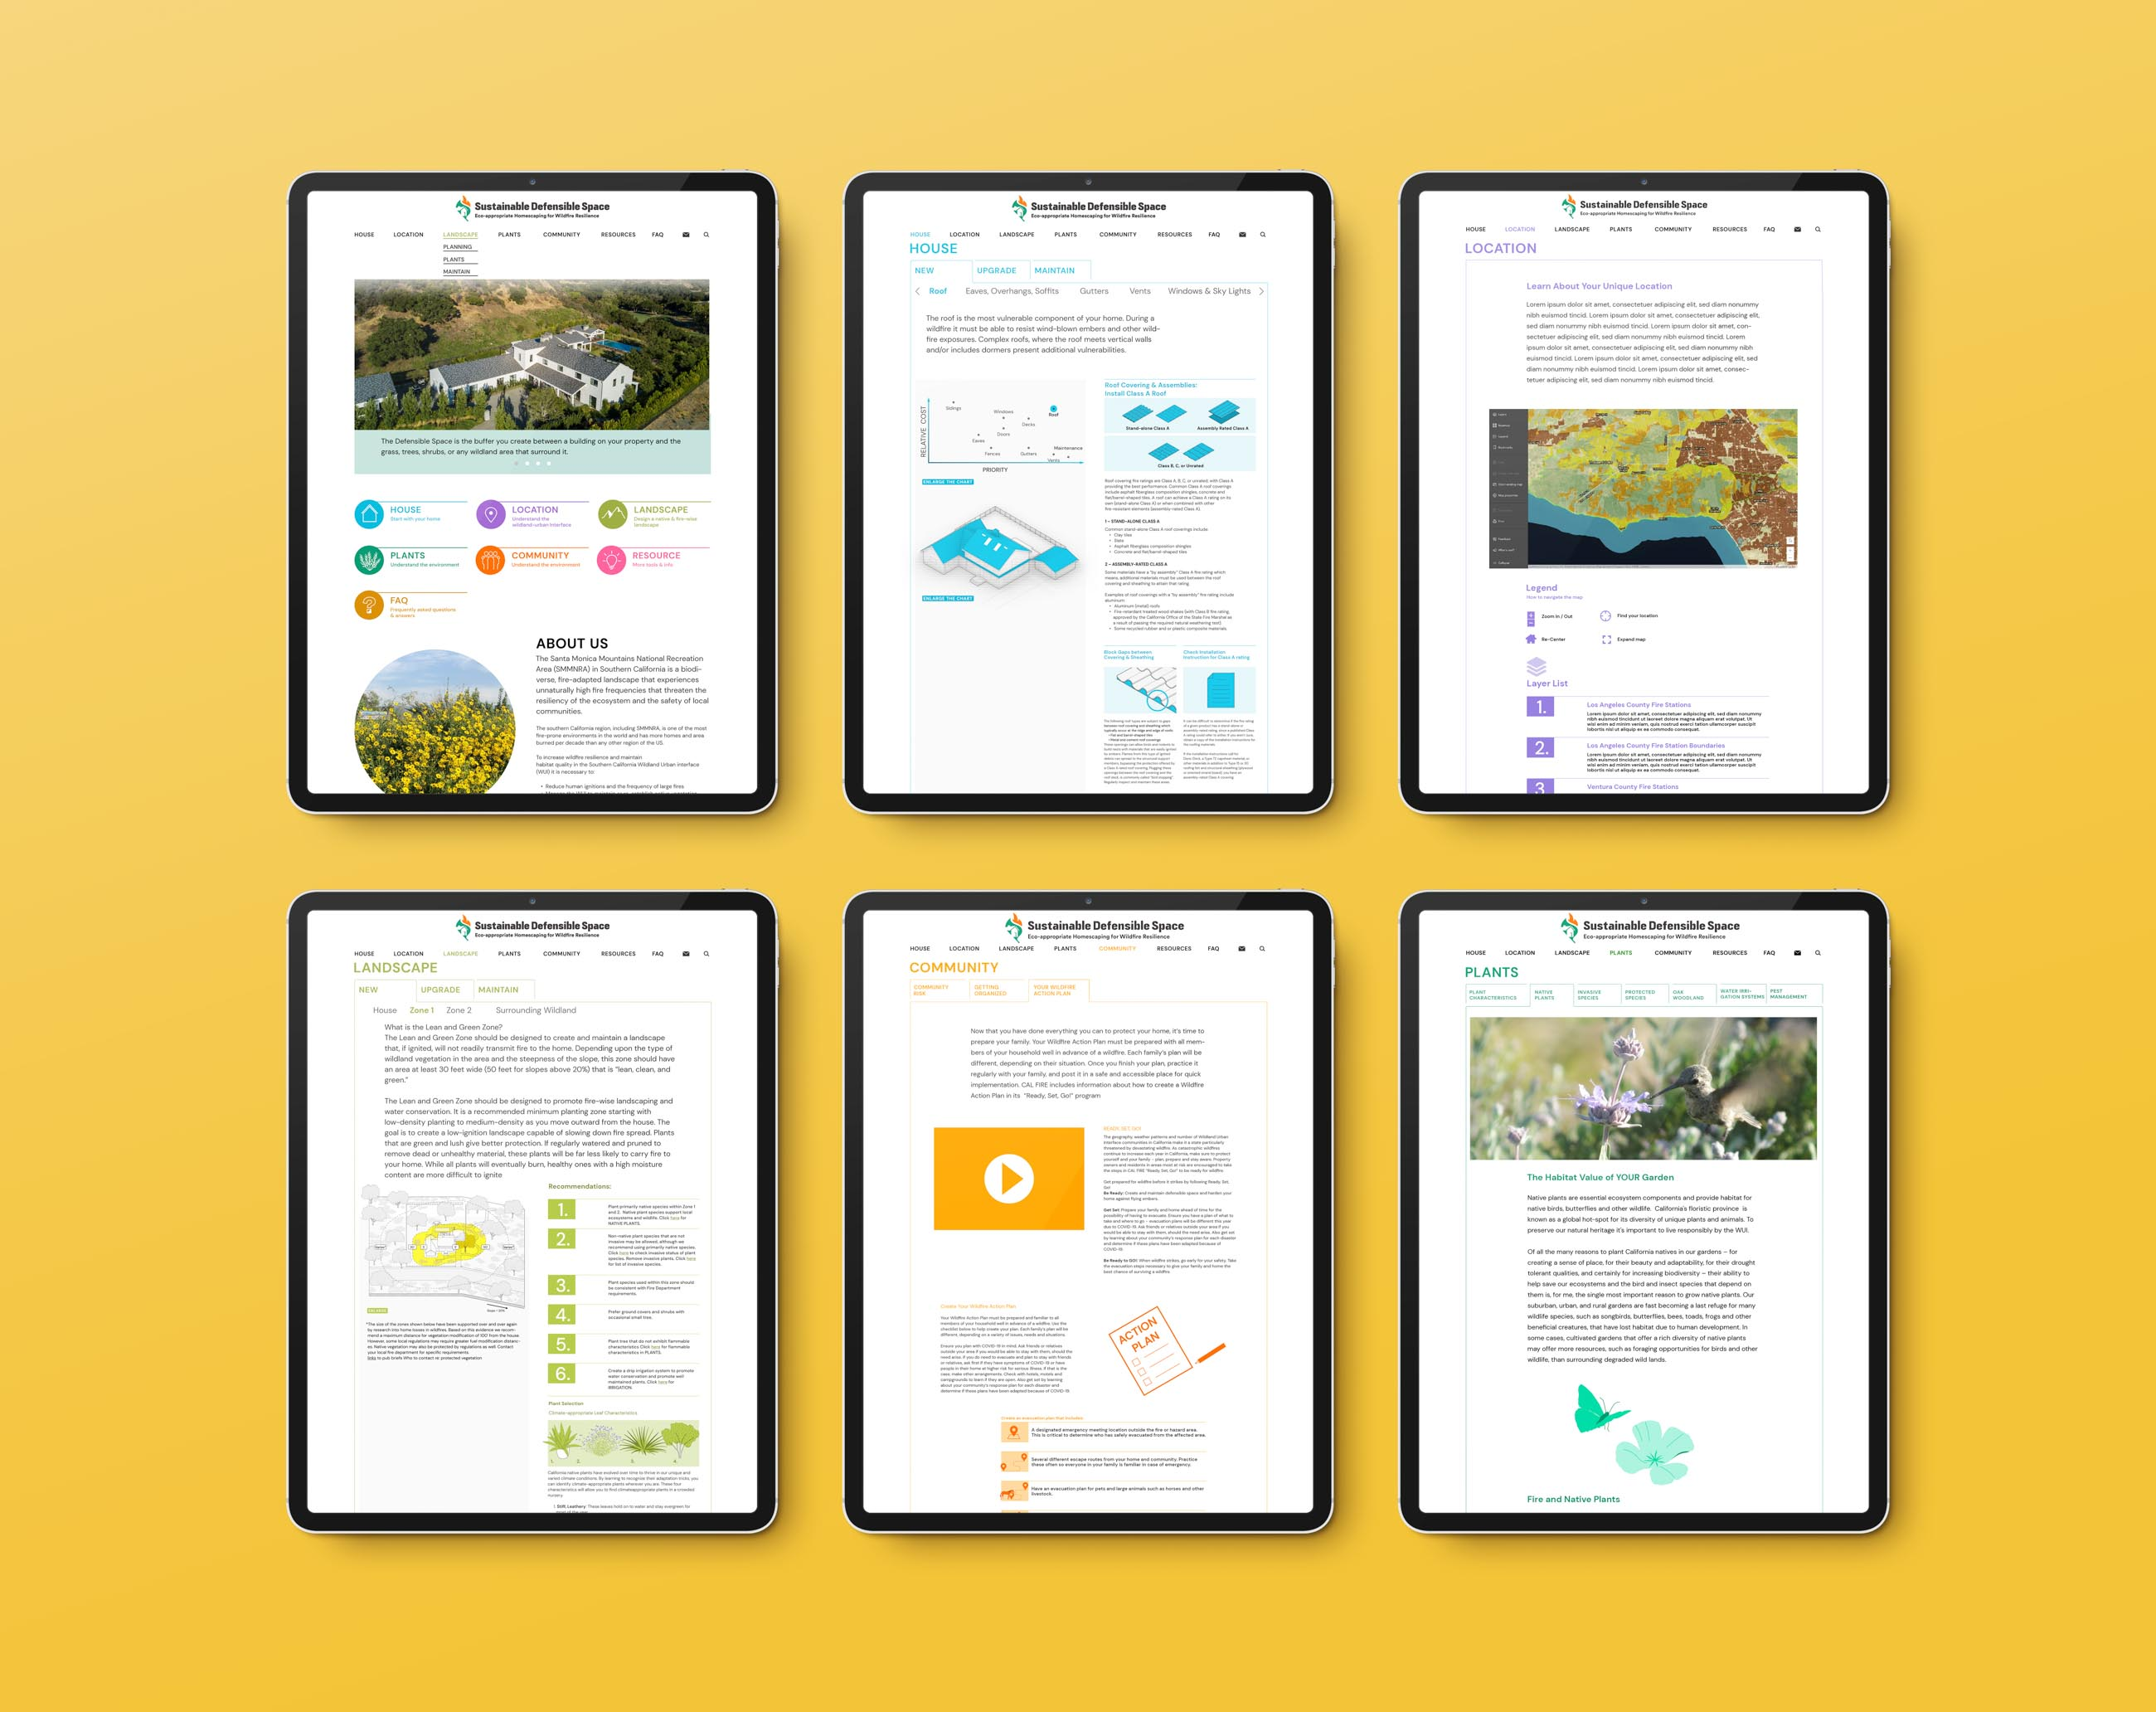 6 iPads showing different webpages from the Sustainable Defensible Space website